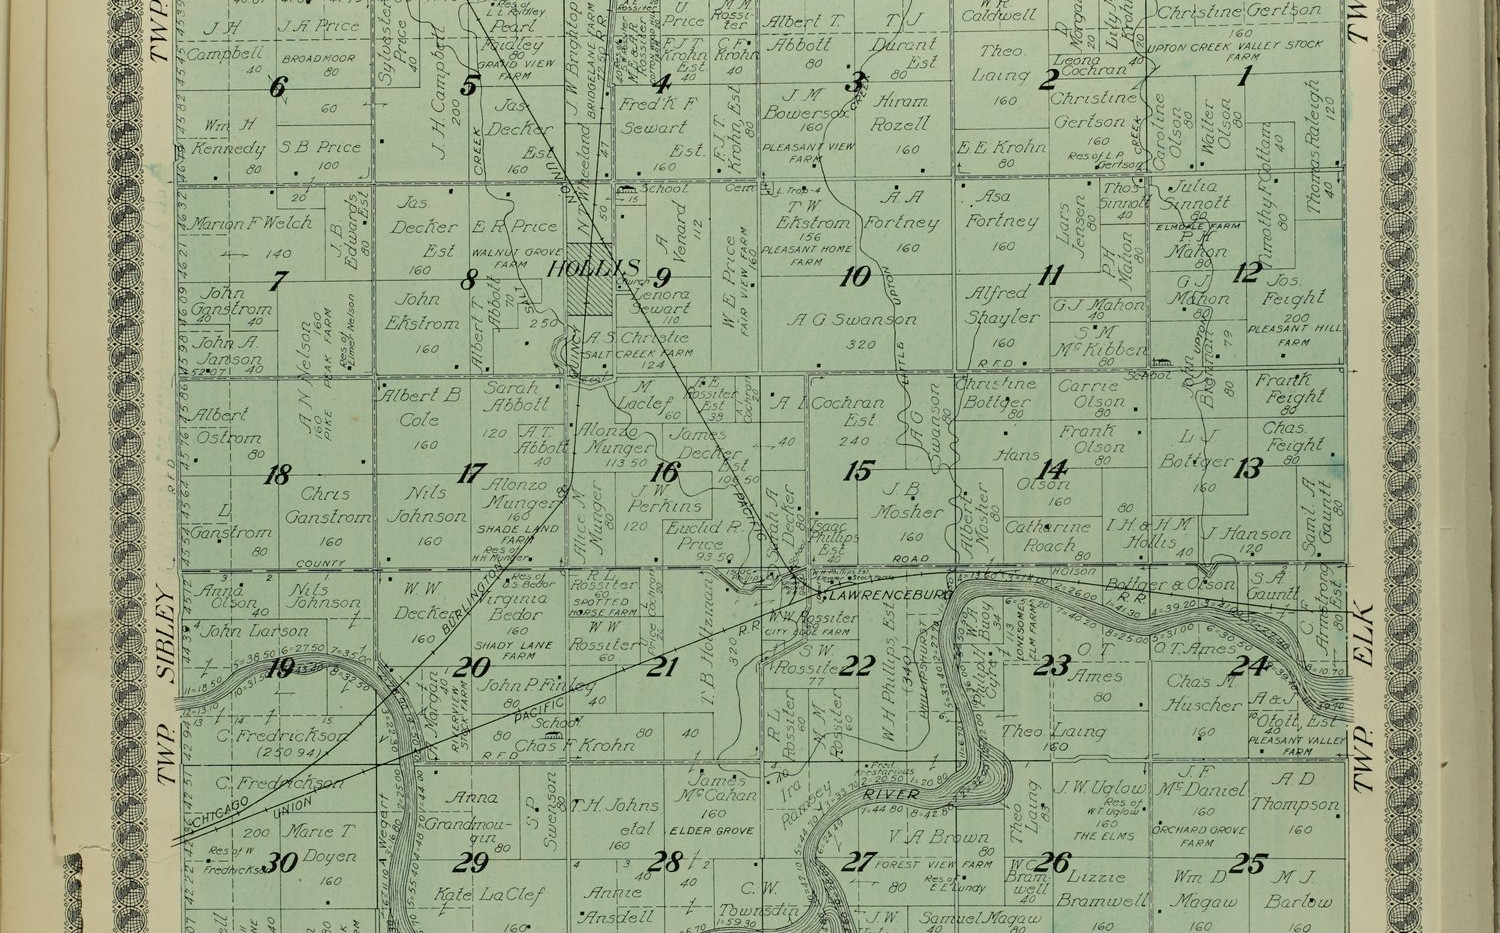 12: Lawrence Township